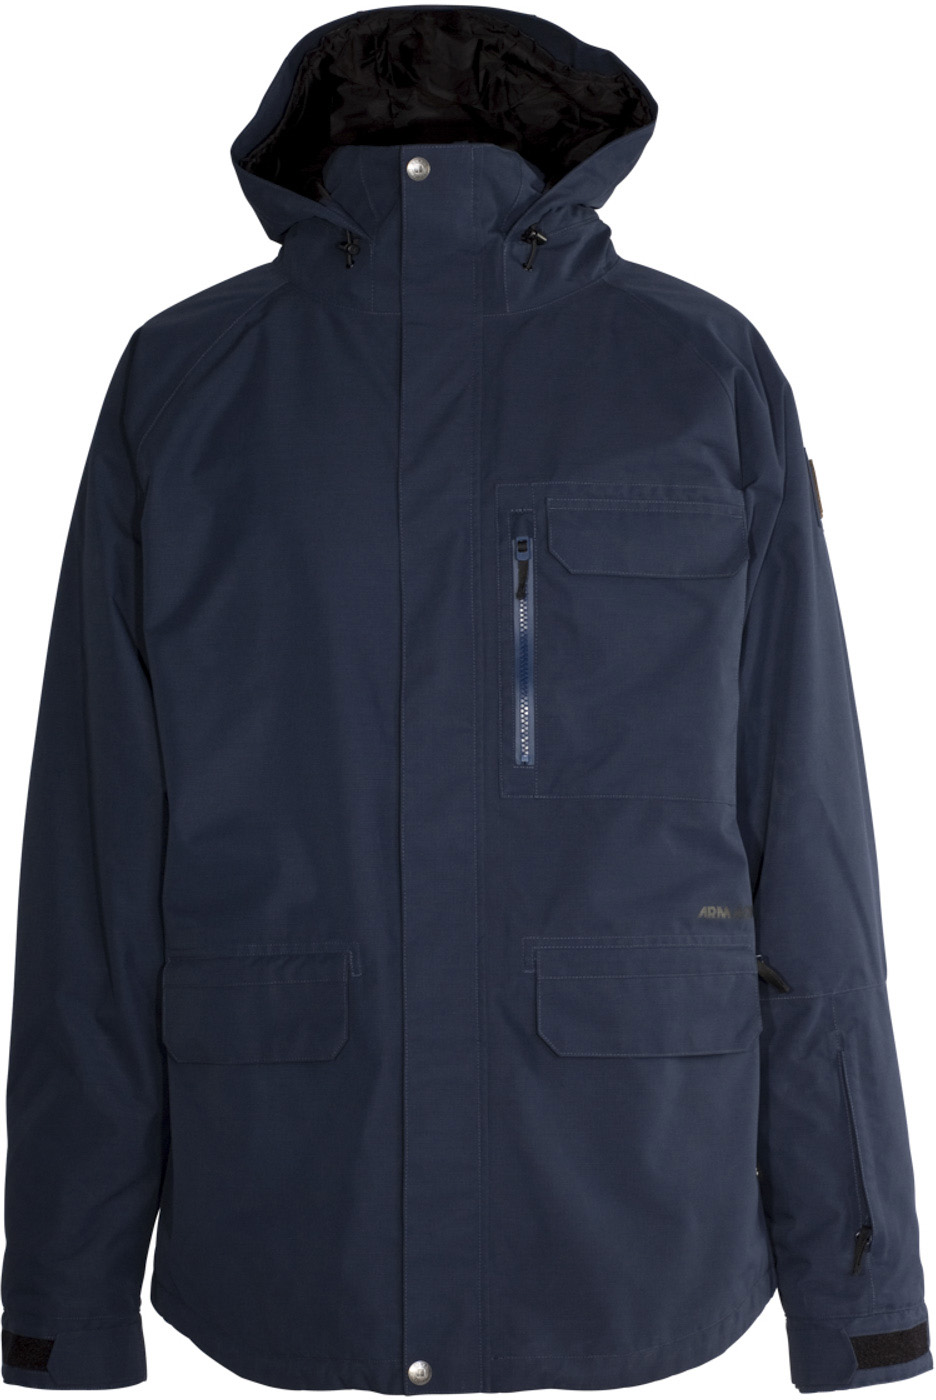 bunda ATKA GORE-TEX INSULATED JACKET navy